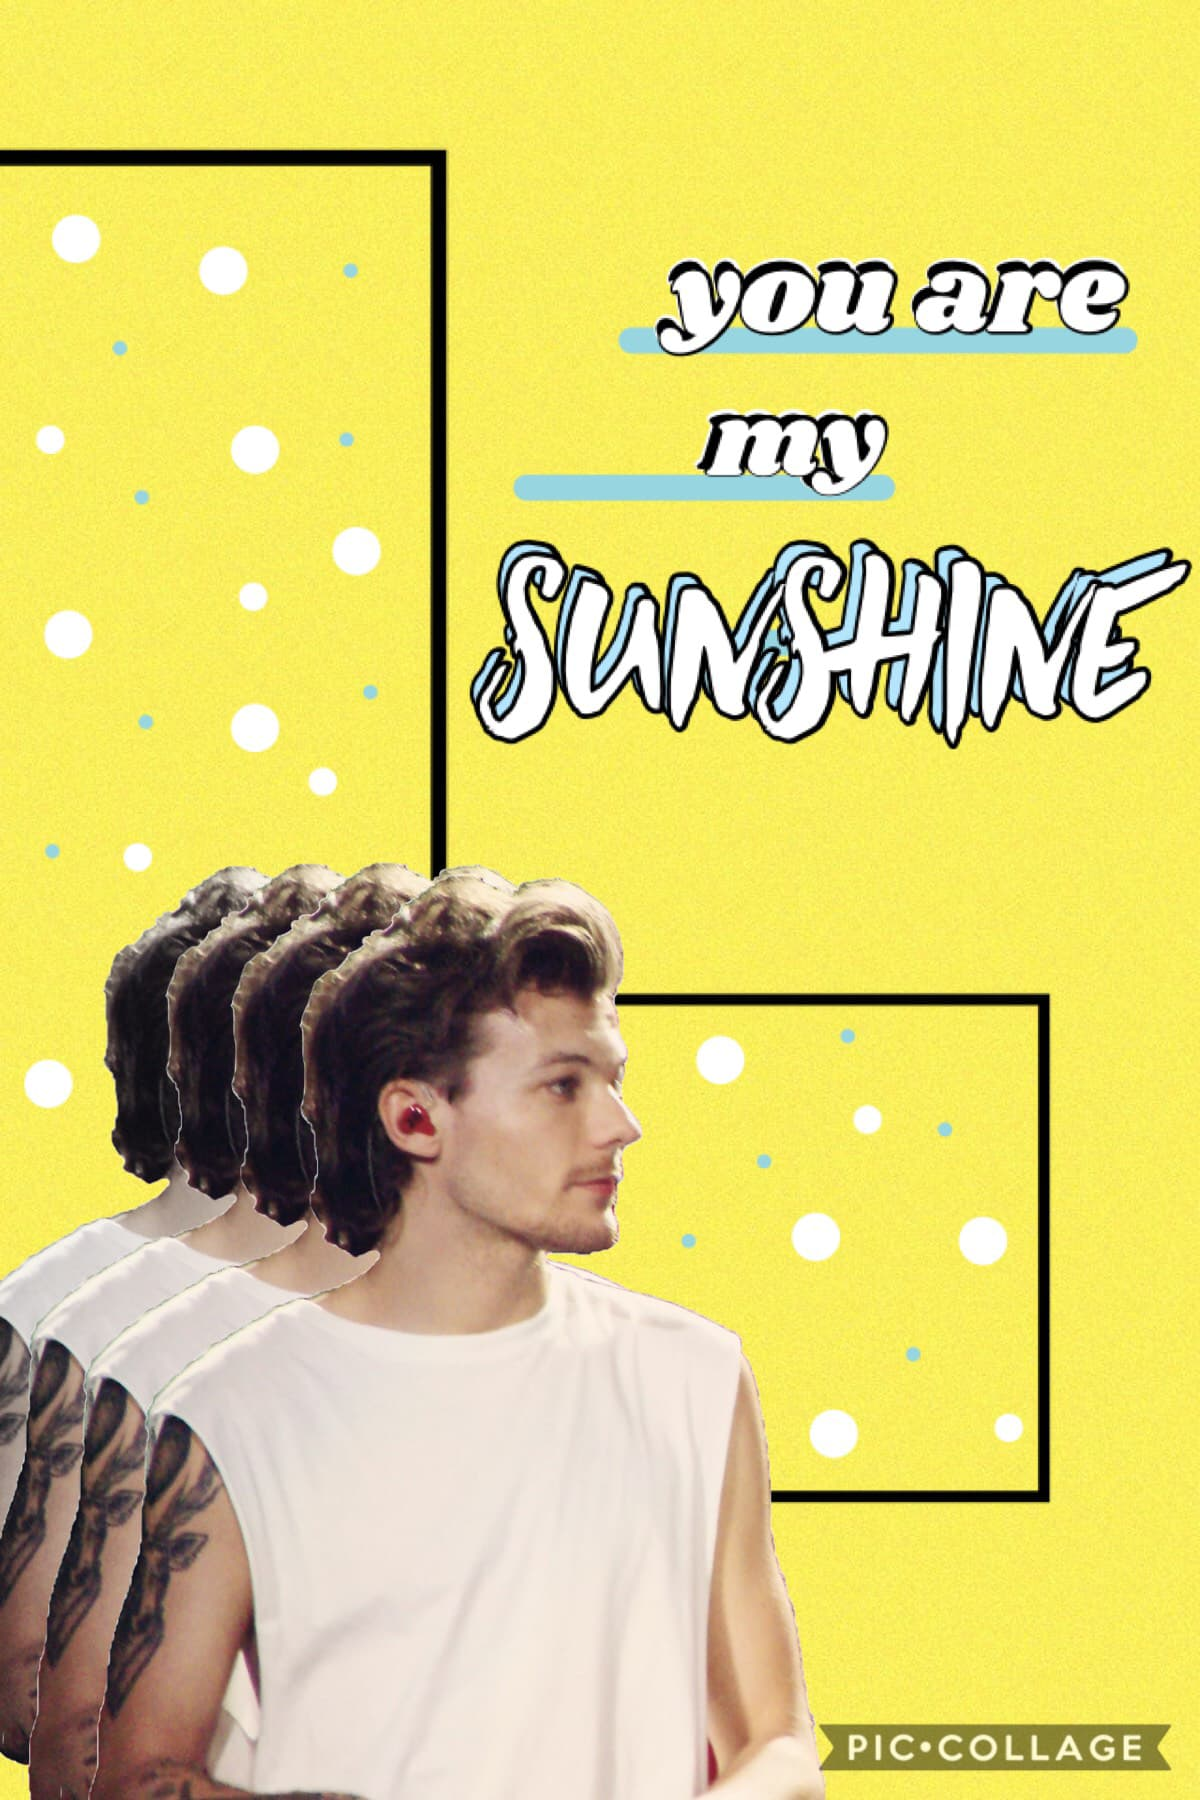 i apparently have a thing for basic pastel edits hhhwewrj here's some louis to brighten ur day. (like literally, this yellow is blinding)